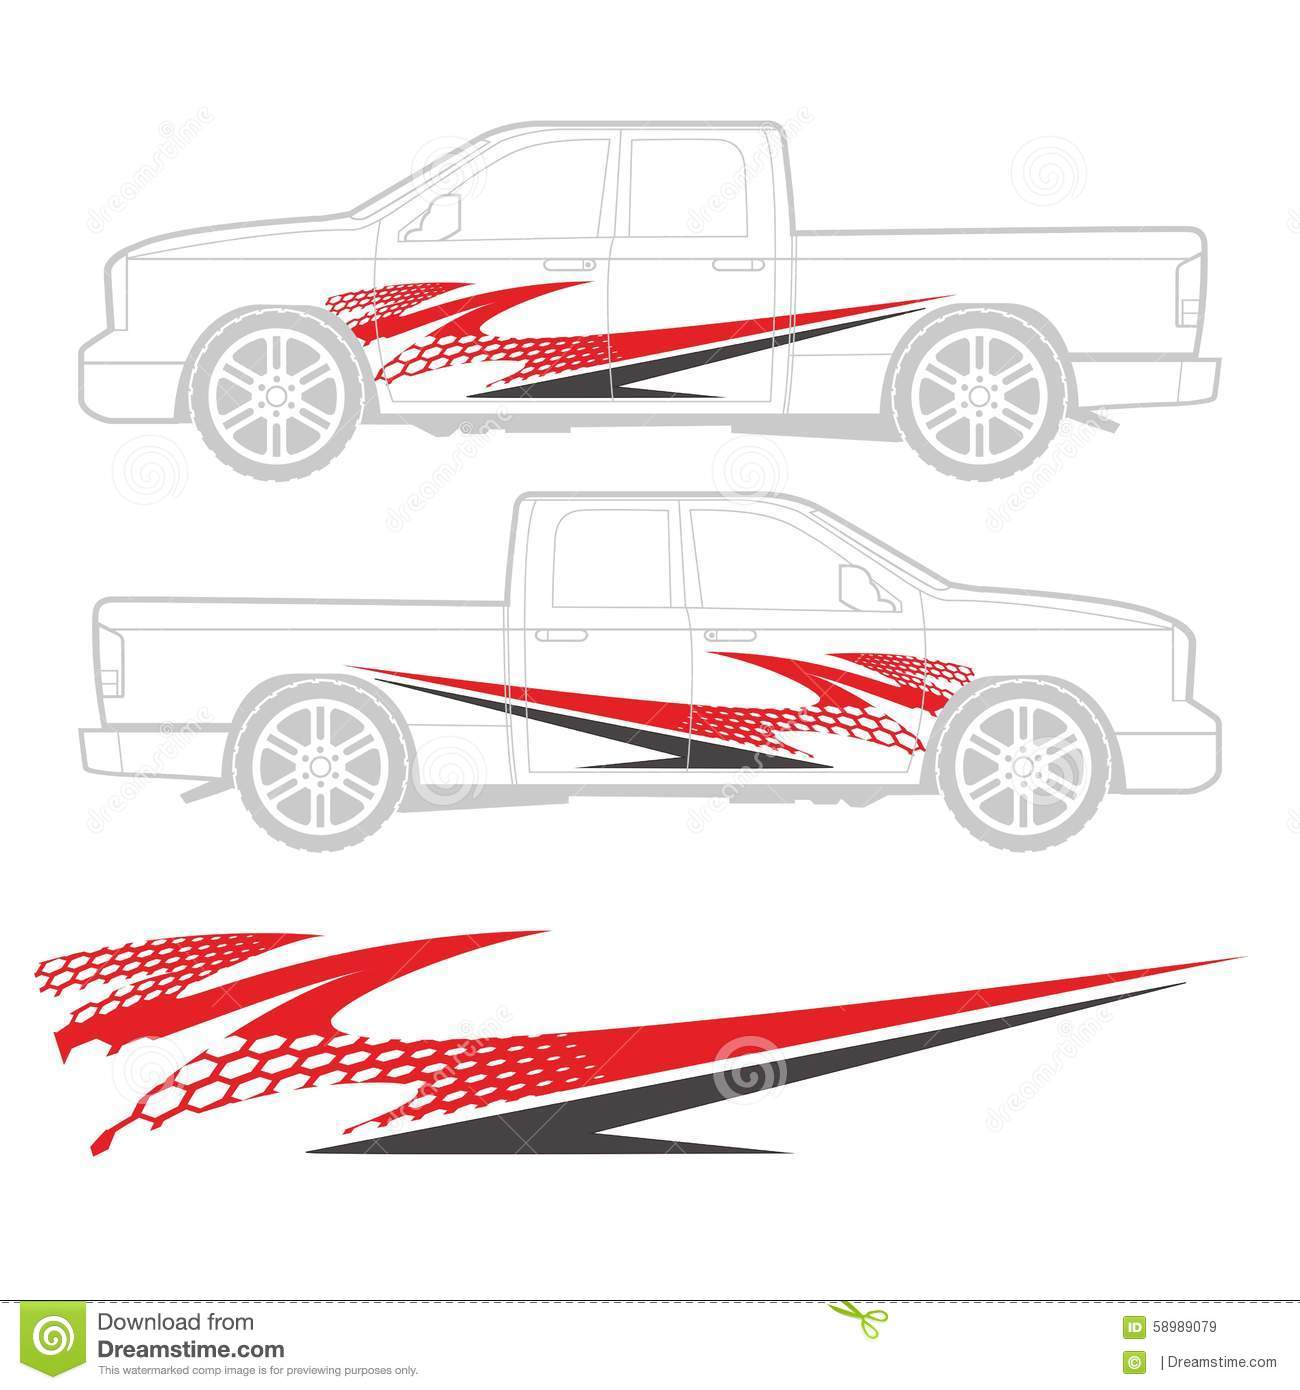 Graphic decal design for truck and vehicle